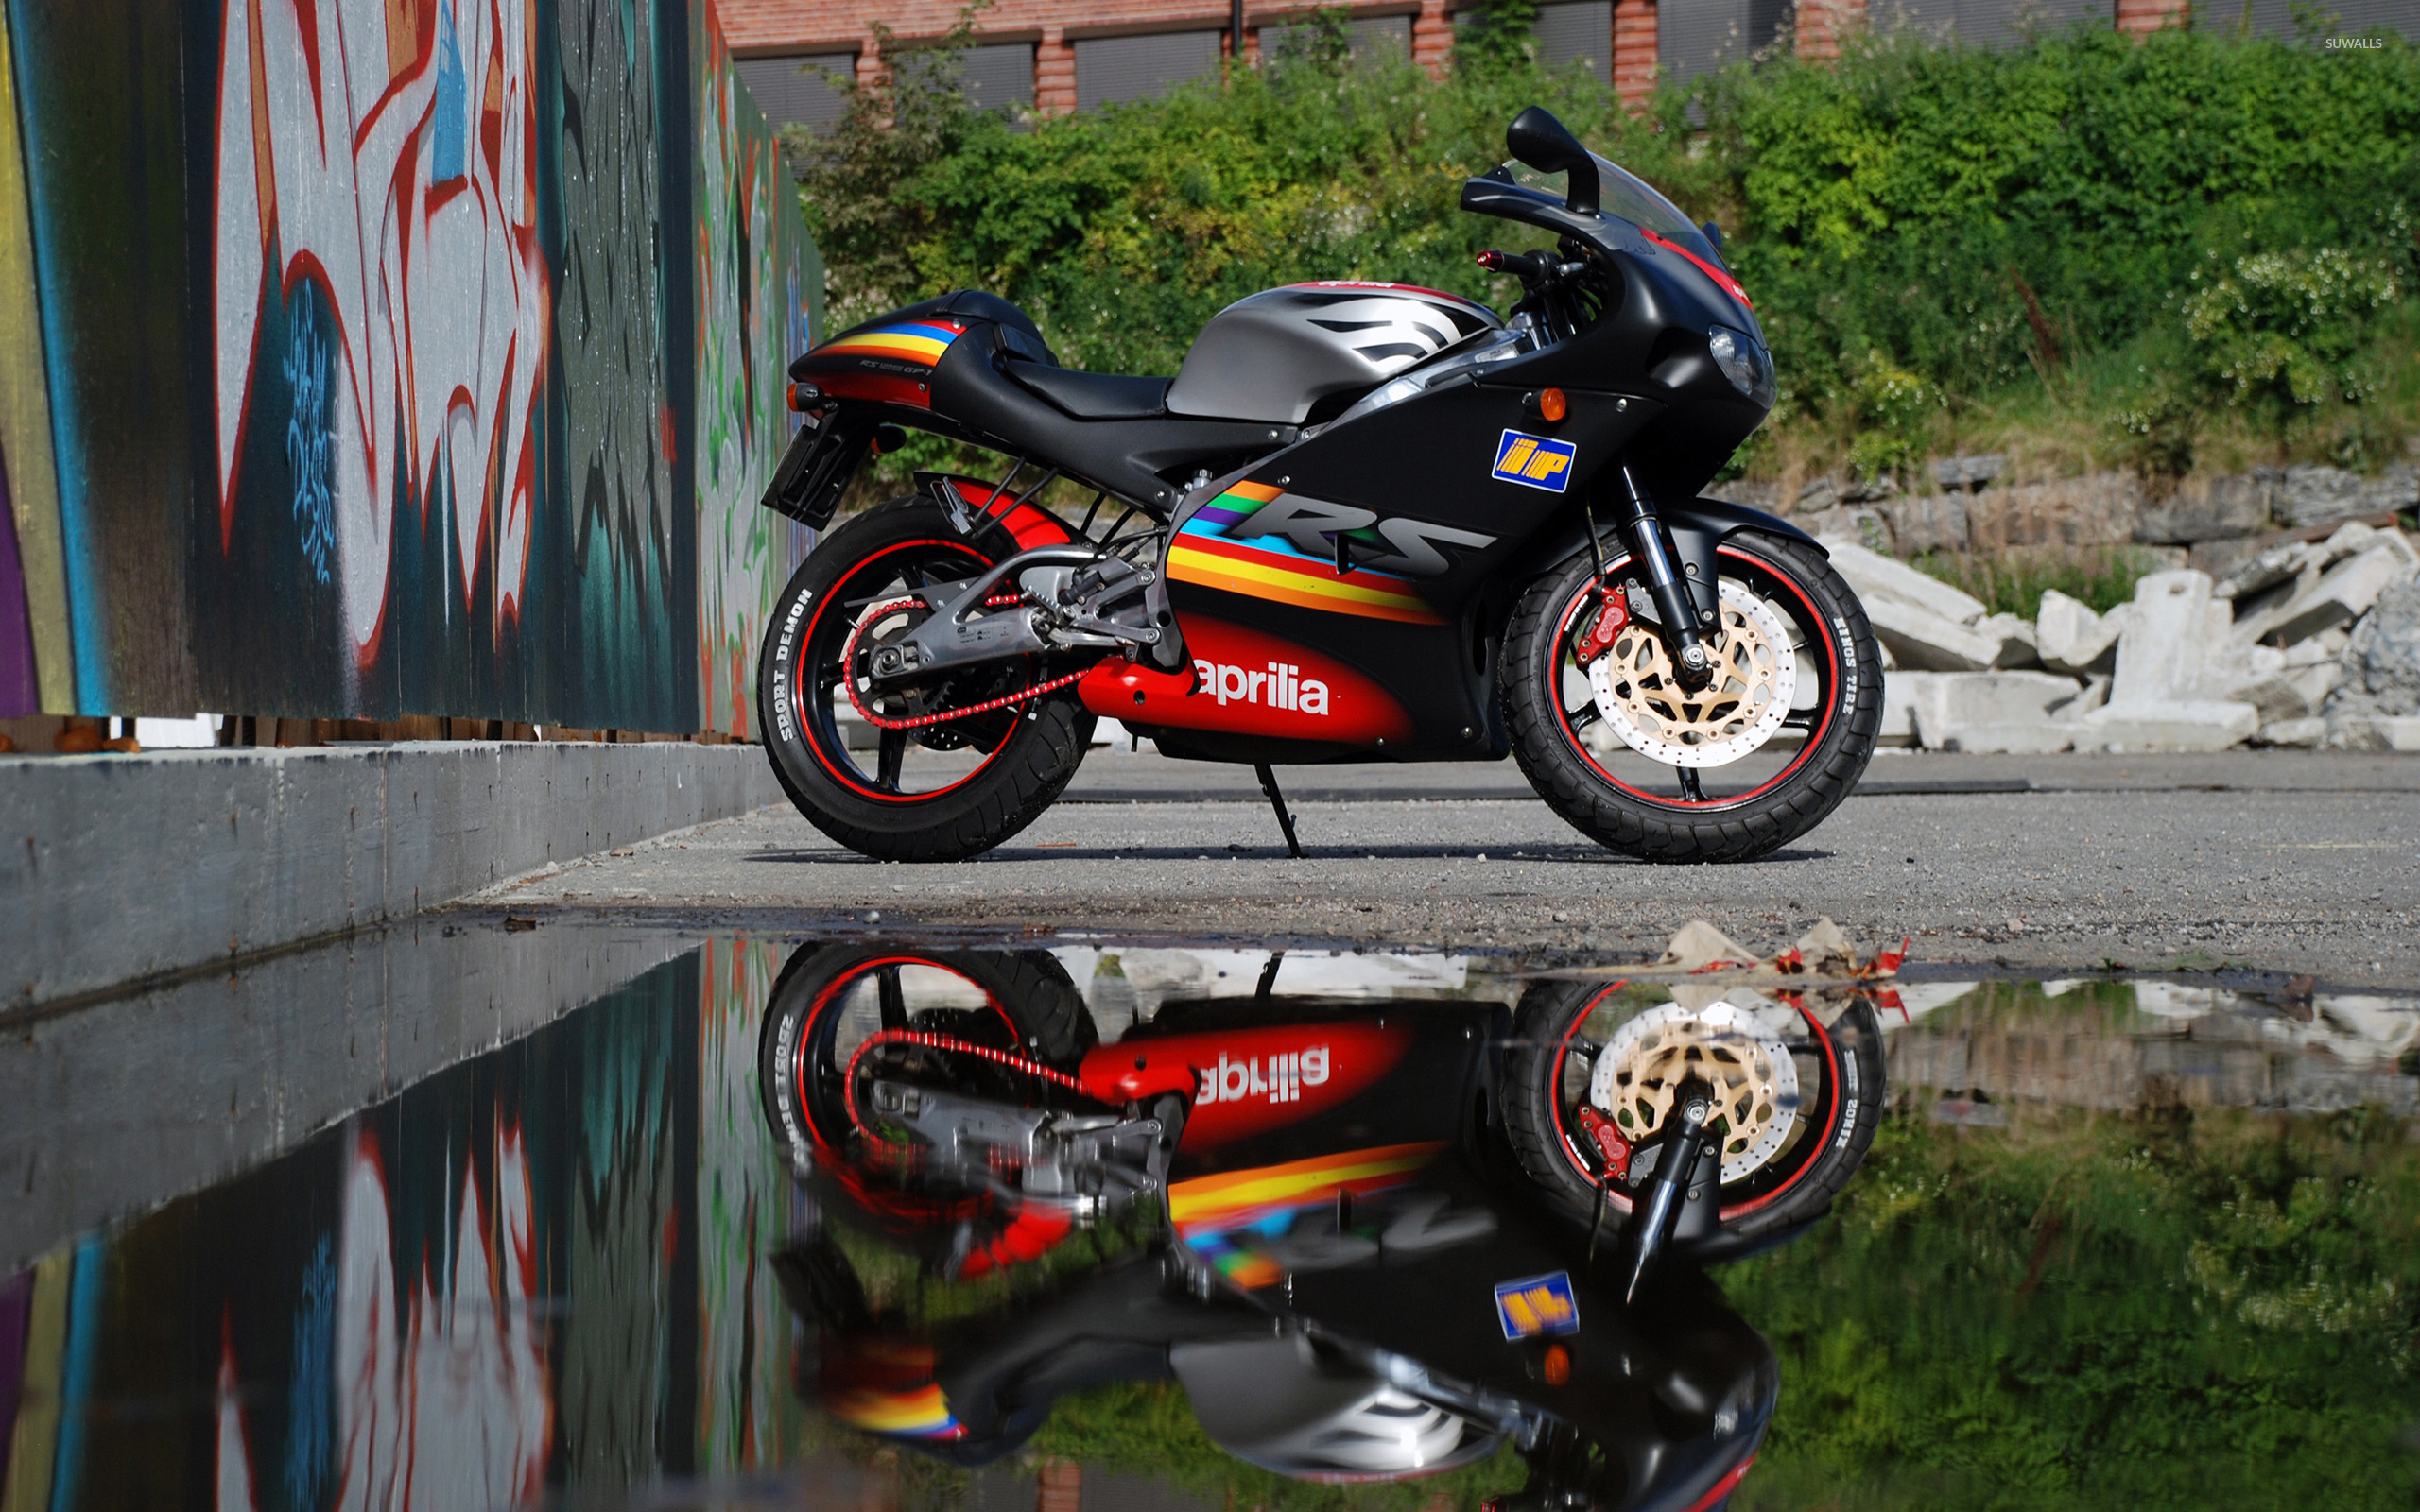 Aprilia RS125 wallpaper   Motorcycle wallpapers   37265 2560x1600